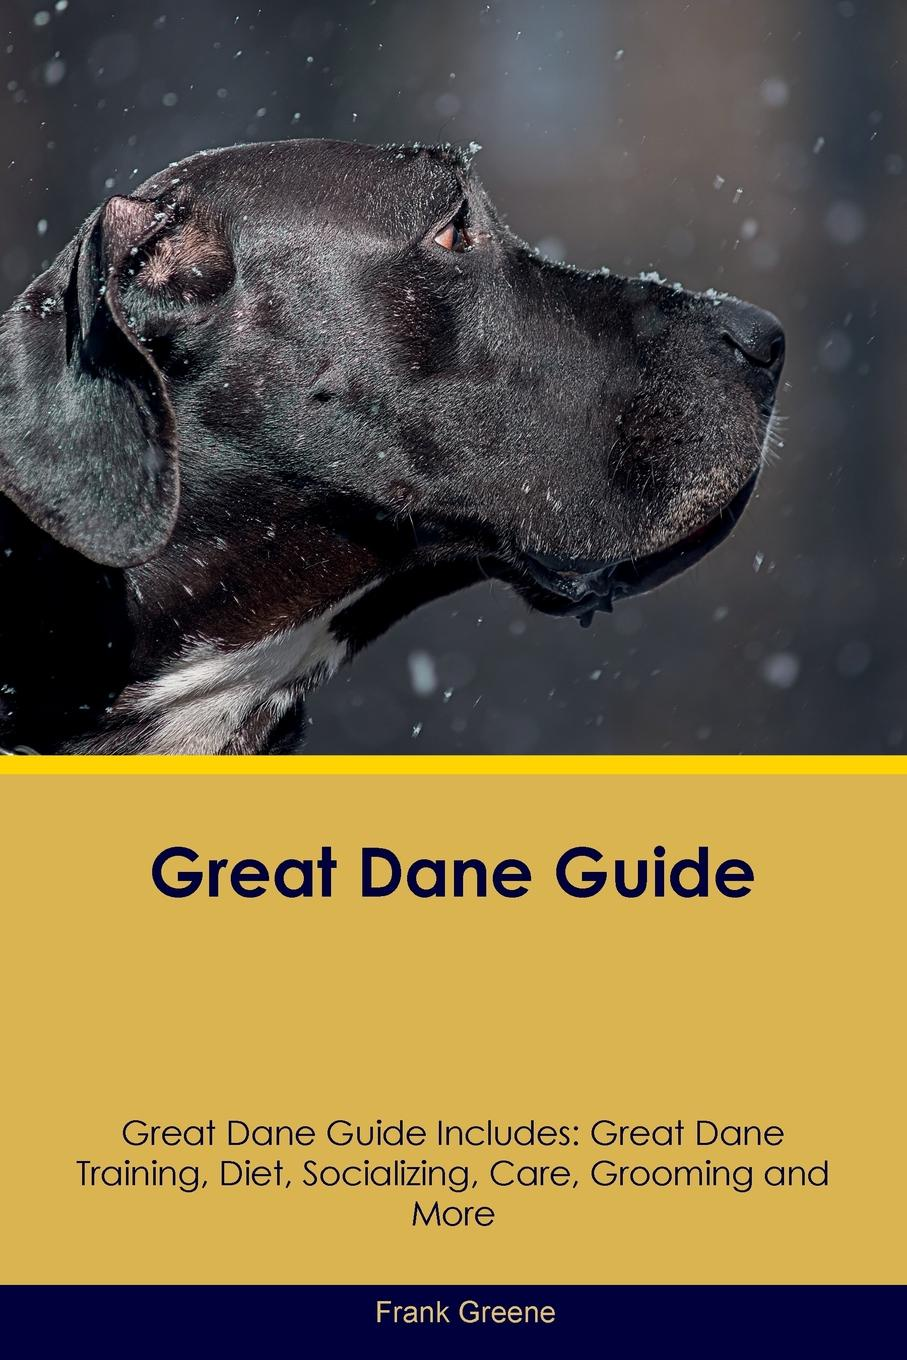 Frank Greene Great Dane Guide Great Dane Guide Includes. Great Dane Training, Diet, Socializing, Care, Grooming, Breeding and More coolidge dane wunpost